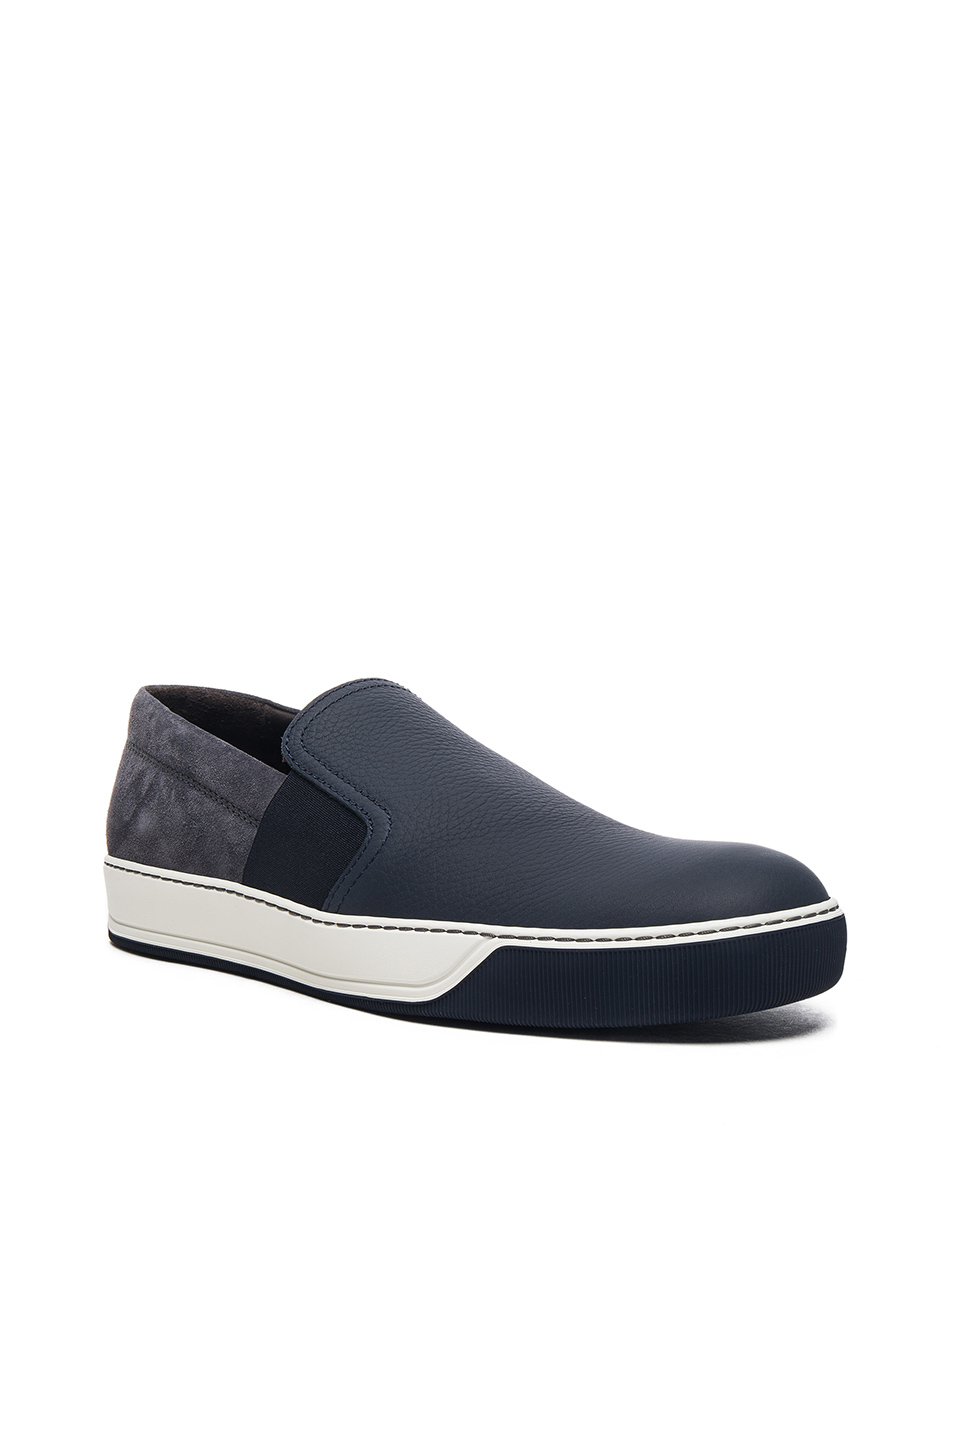 Lanvin Opaco Grained Calfskin Slipper Sneakers in Dark Blue